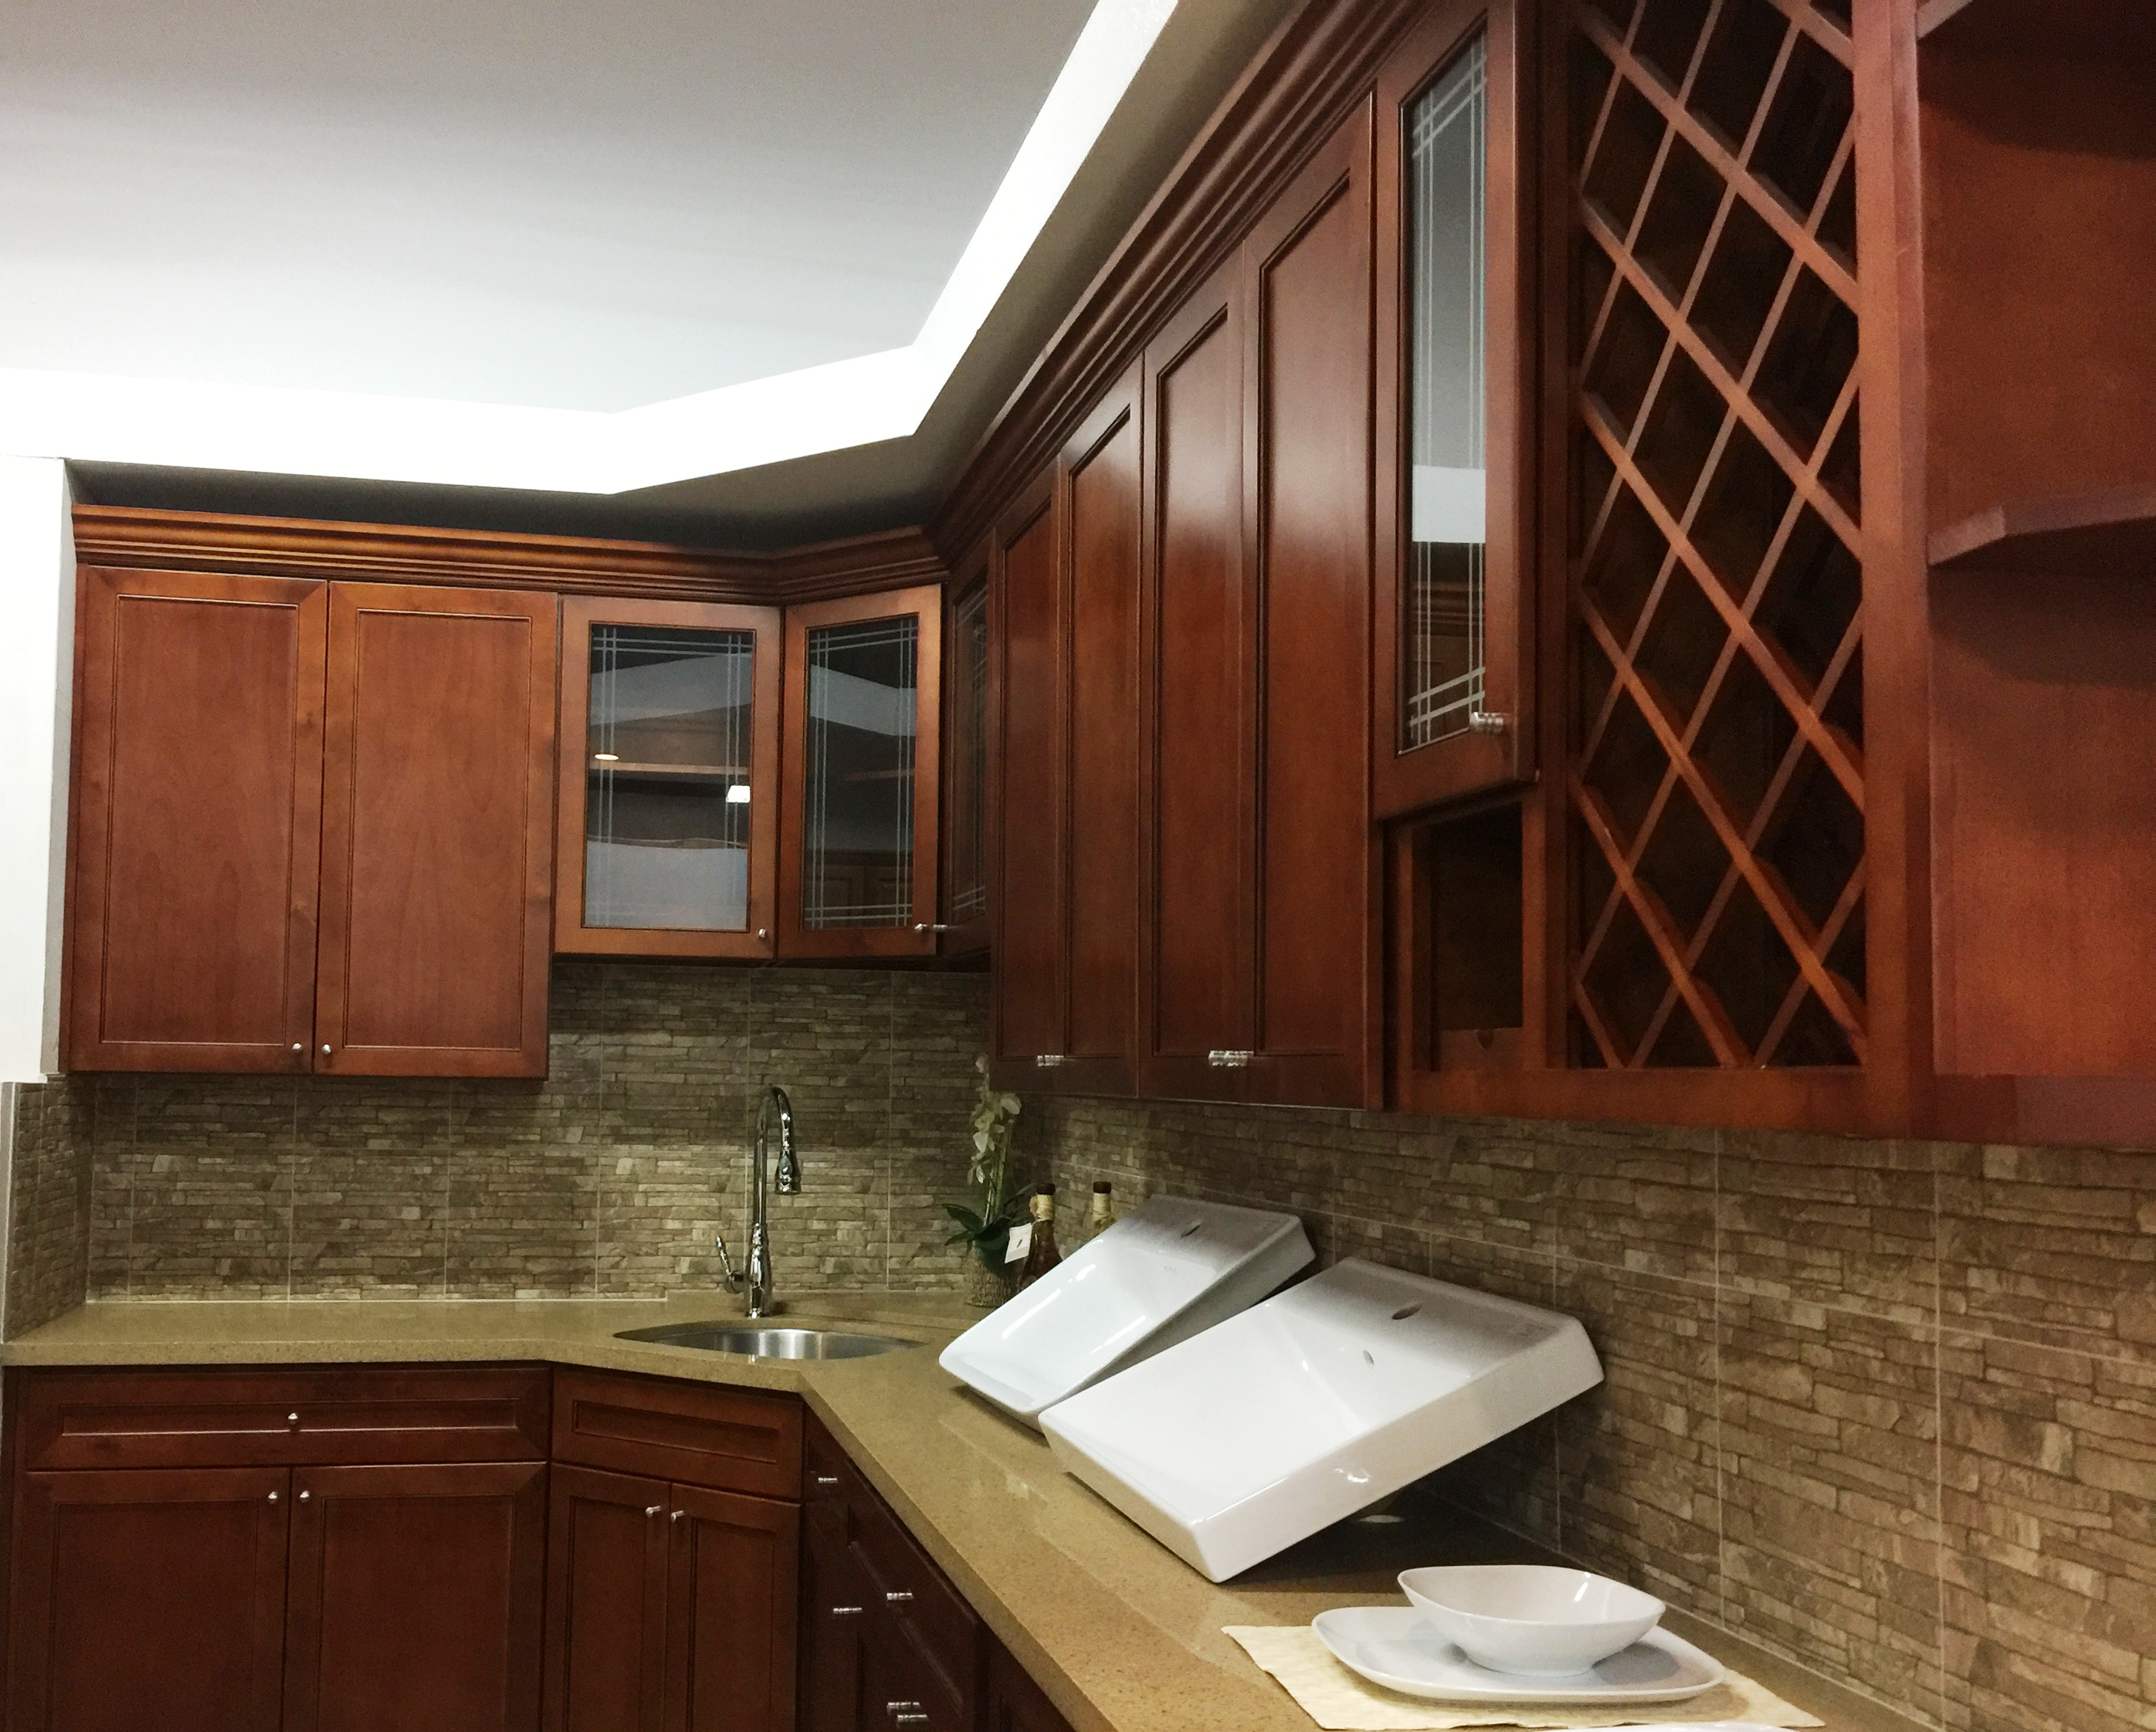 Antic Cherry colored Maple Kitchen Cabinets